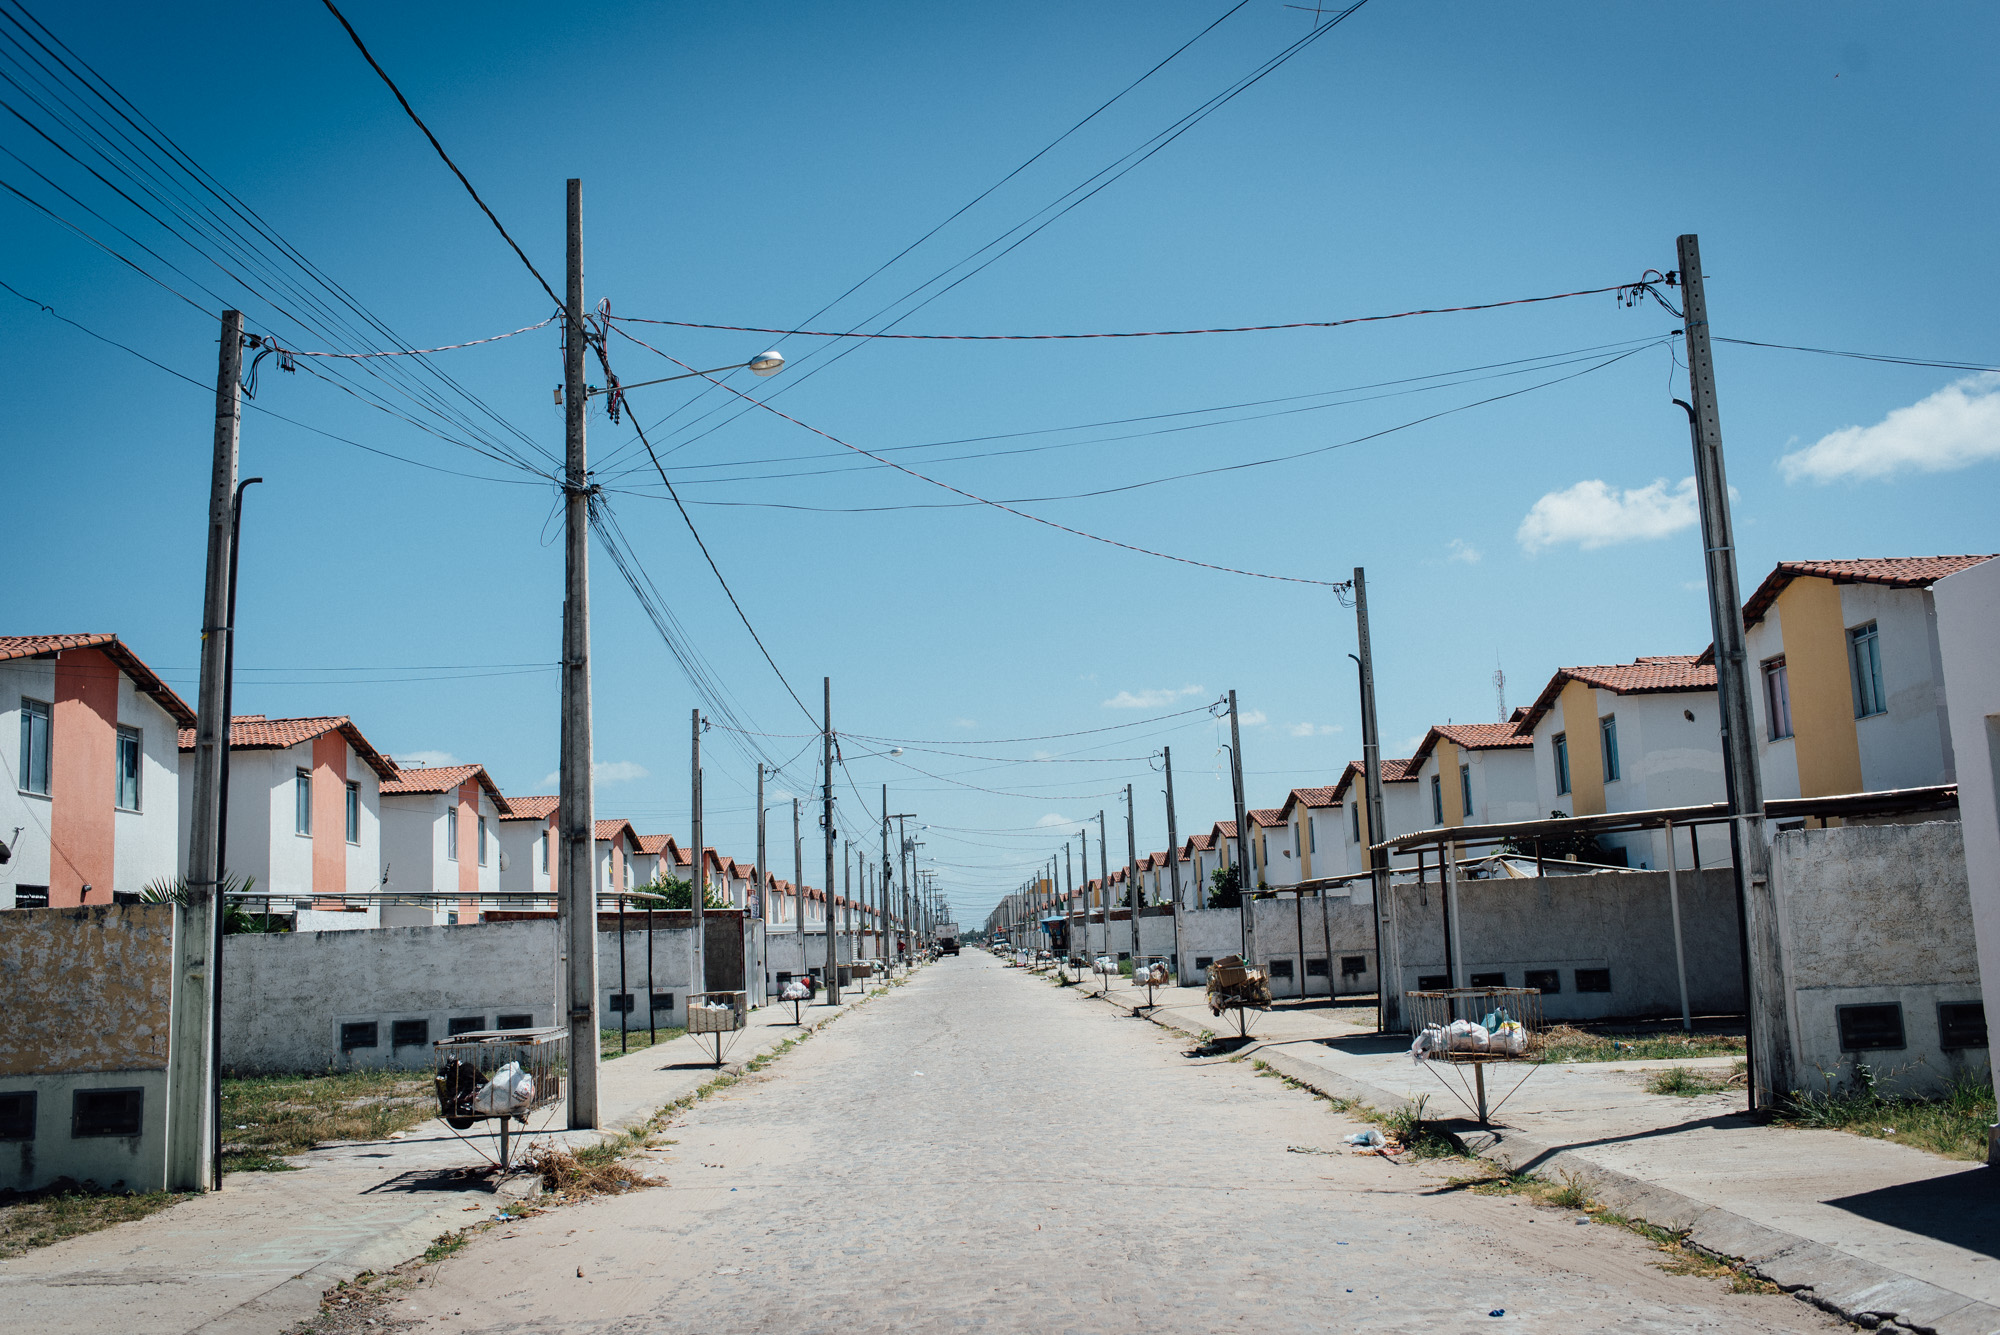 The dizzying view down a street at the Irma Dulce housing complex in Joao Pessoa.